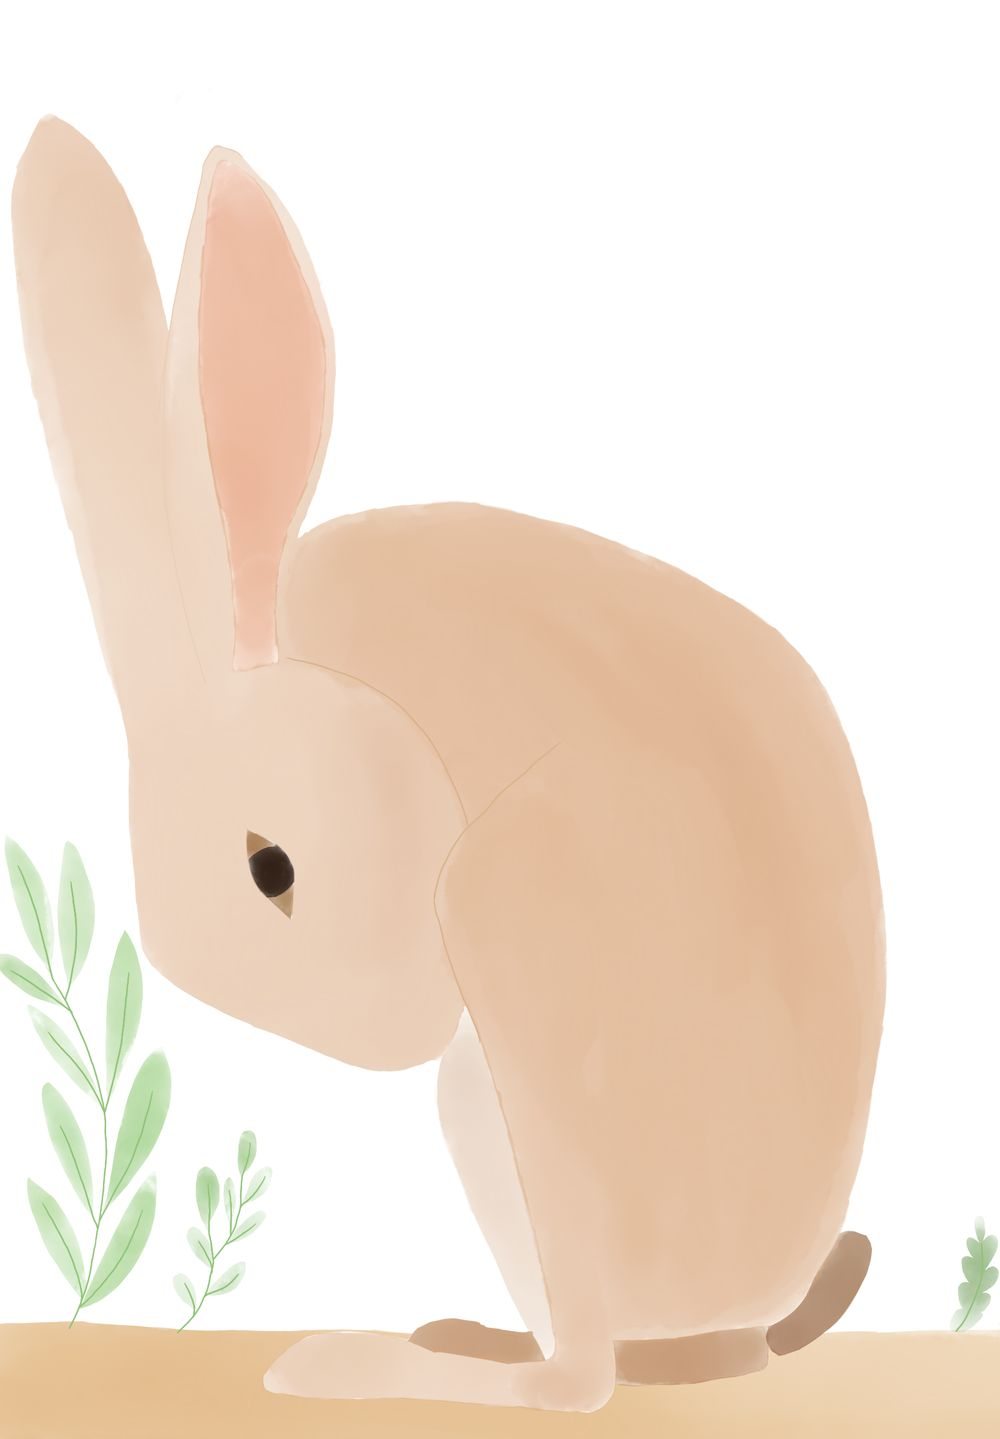 Hare - image 2 - student project